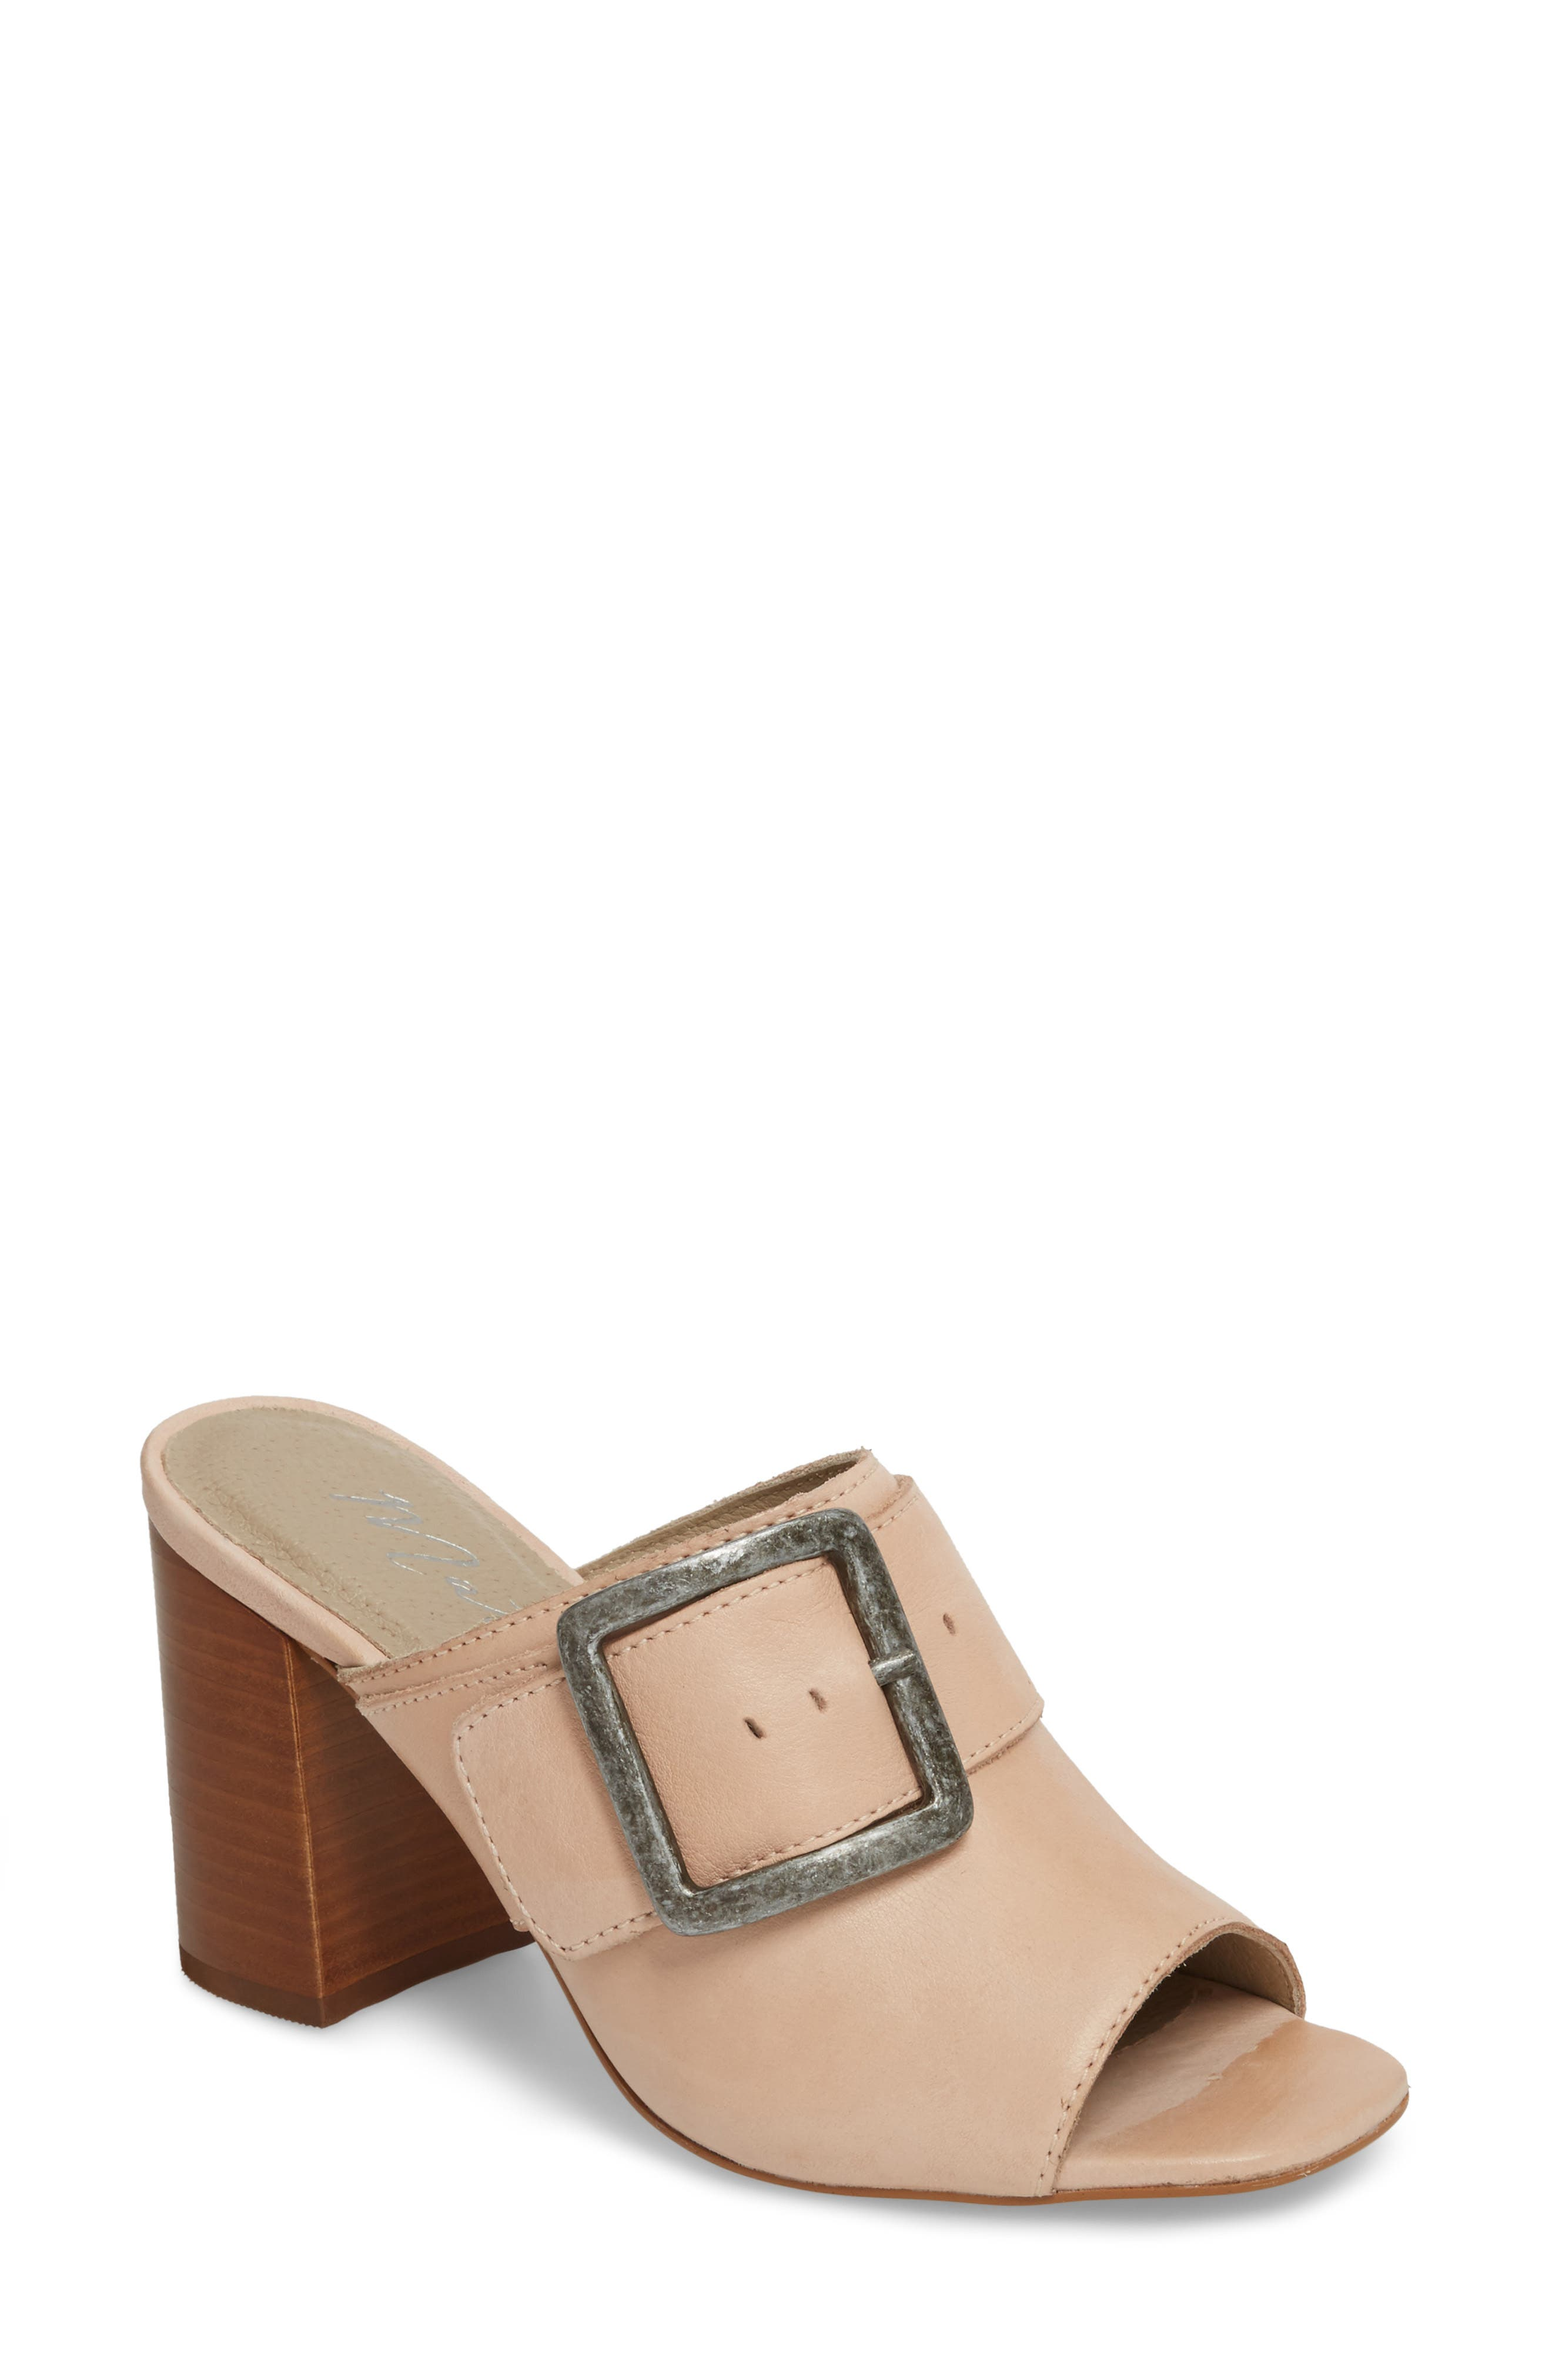 Beatrice Sandal,                         Main,                         color, Nude Leather